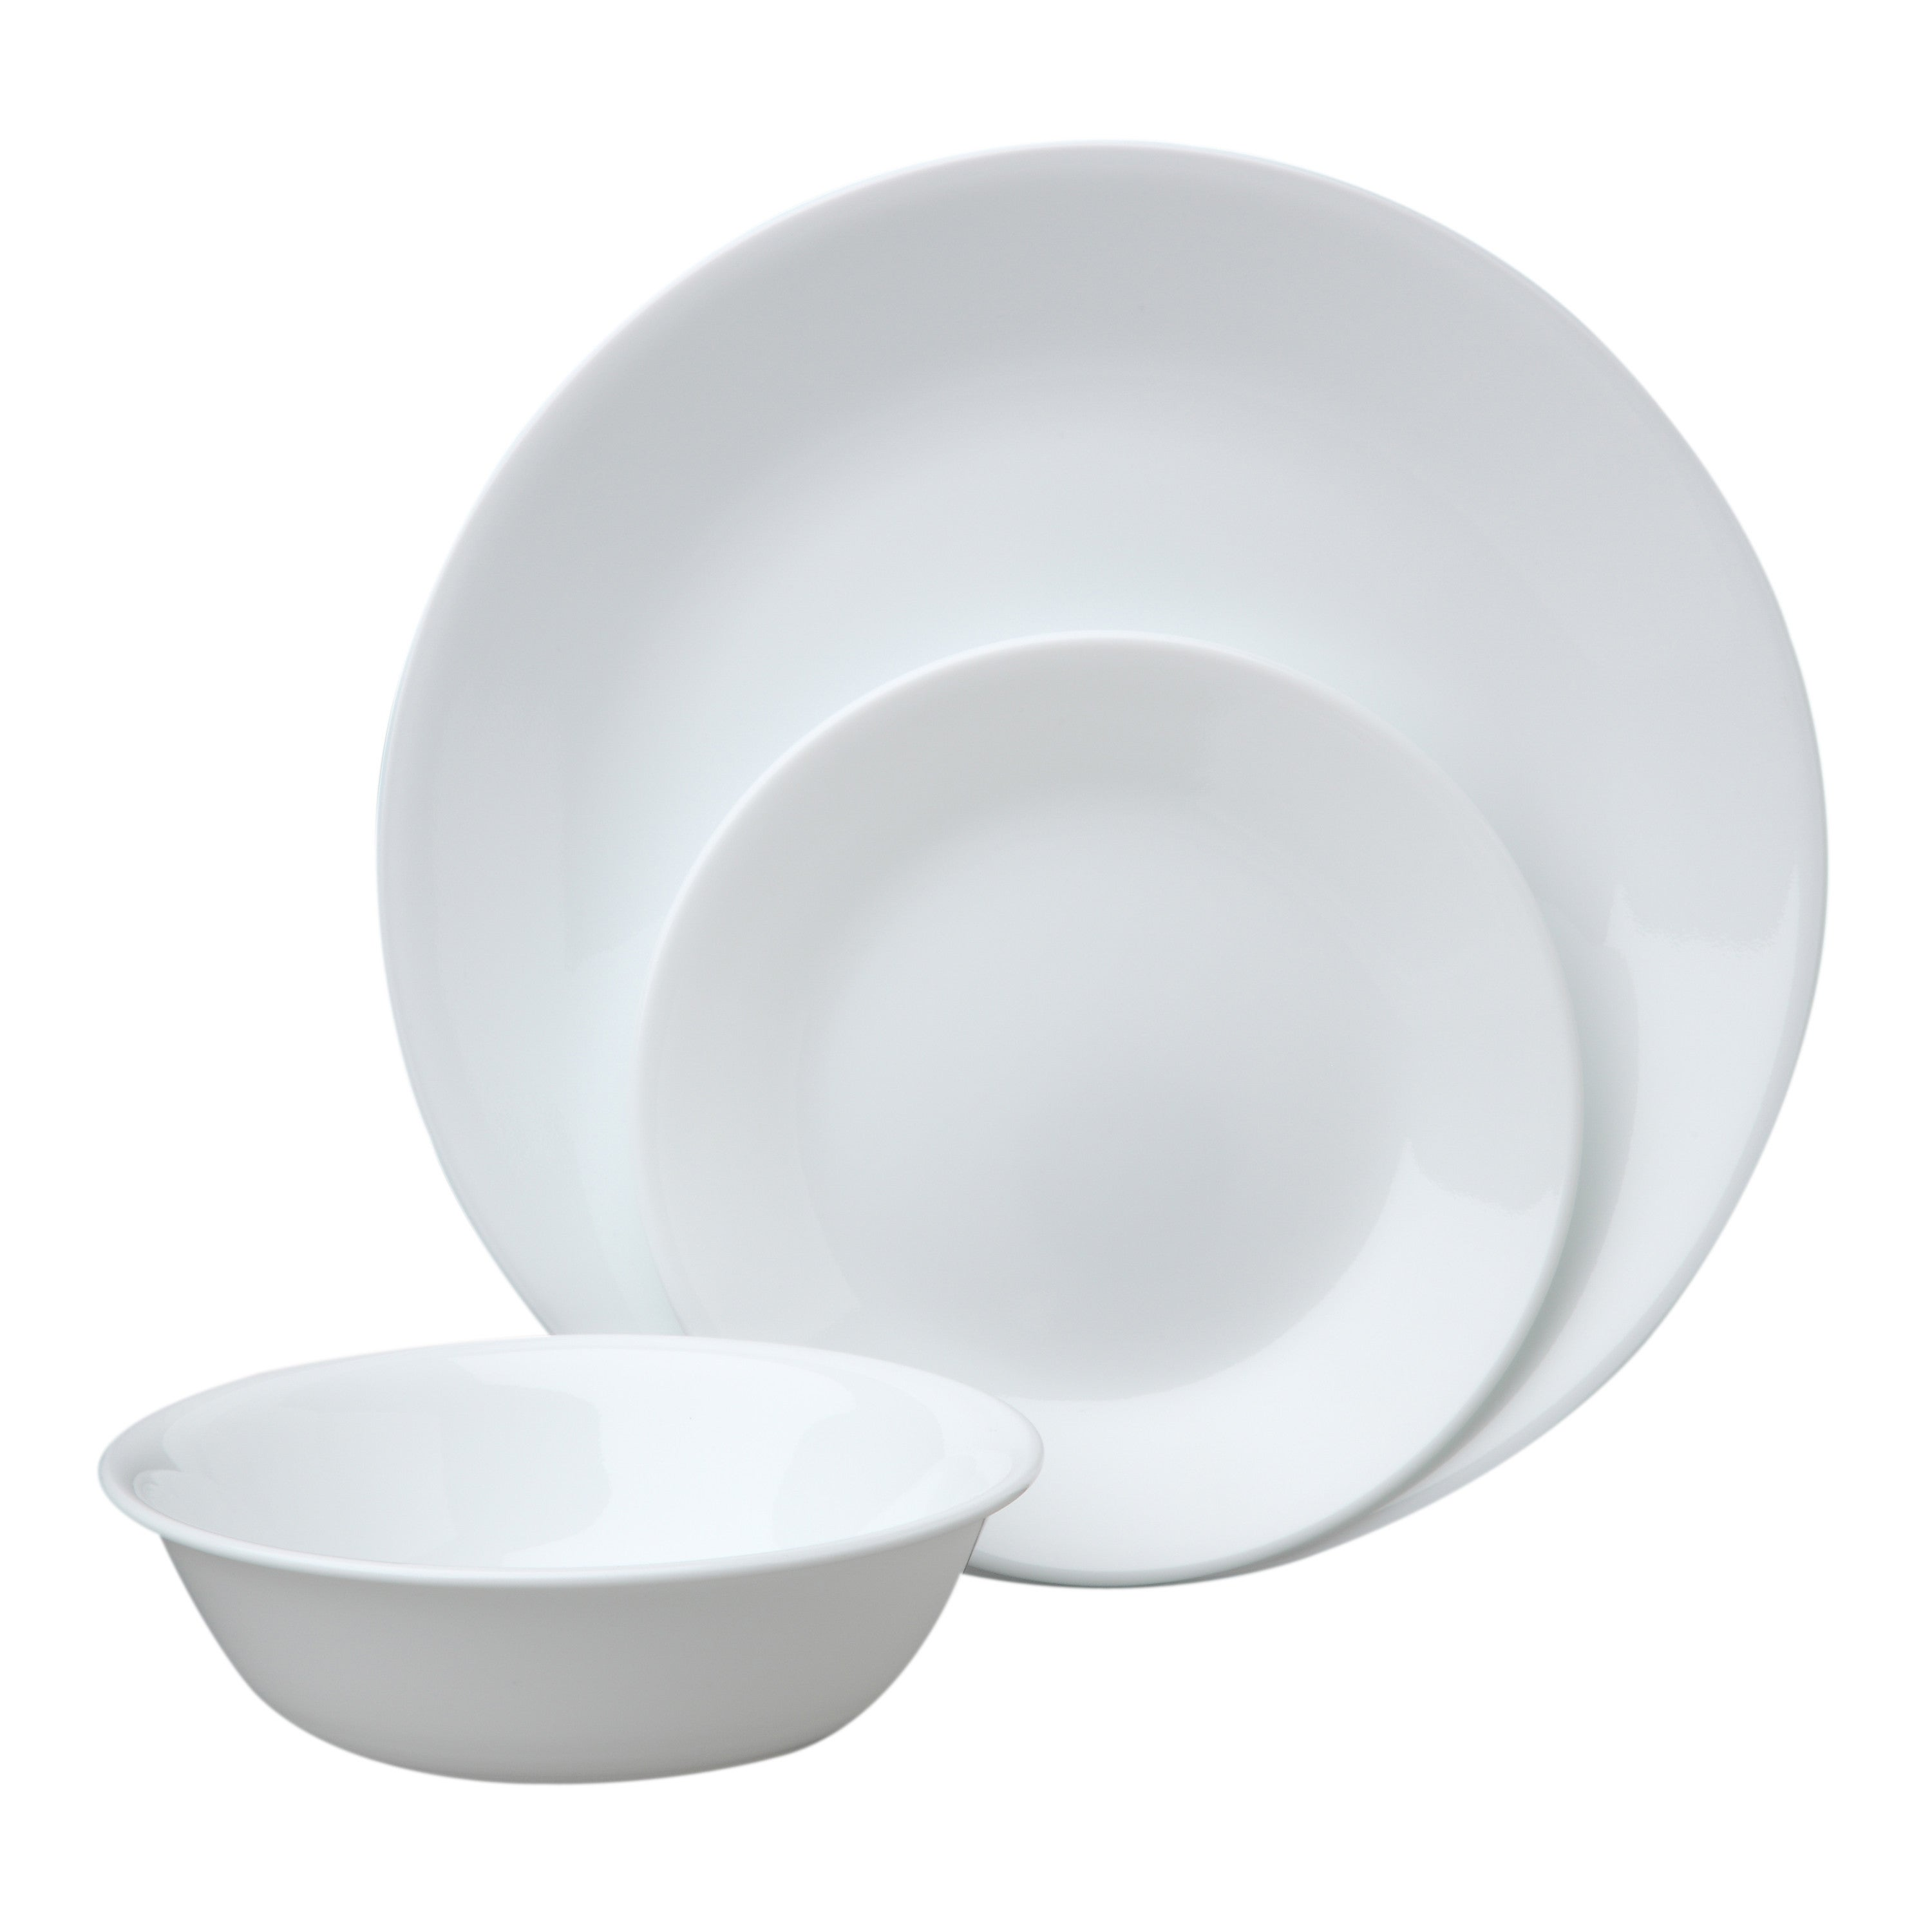 Shop Corelle Livingware 18-piece Dinnerware Set (Service for 6) - Free Shipping Today - Overstock.com - 9977354  sc 1 st  Overstock & Shop Corelle Livingware 18-piece Dinnerware Set (Service for 6 ...